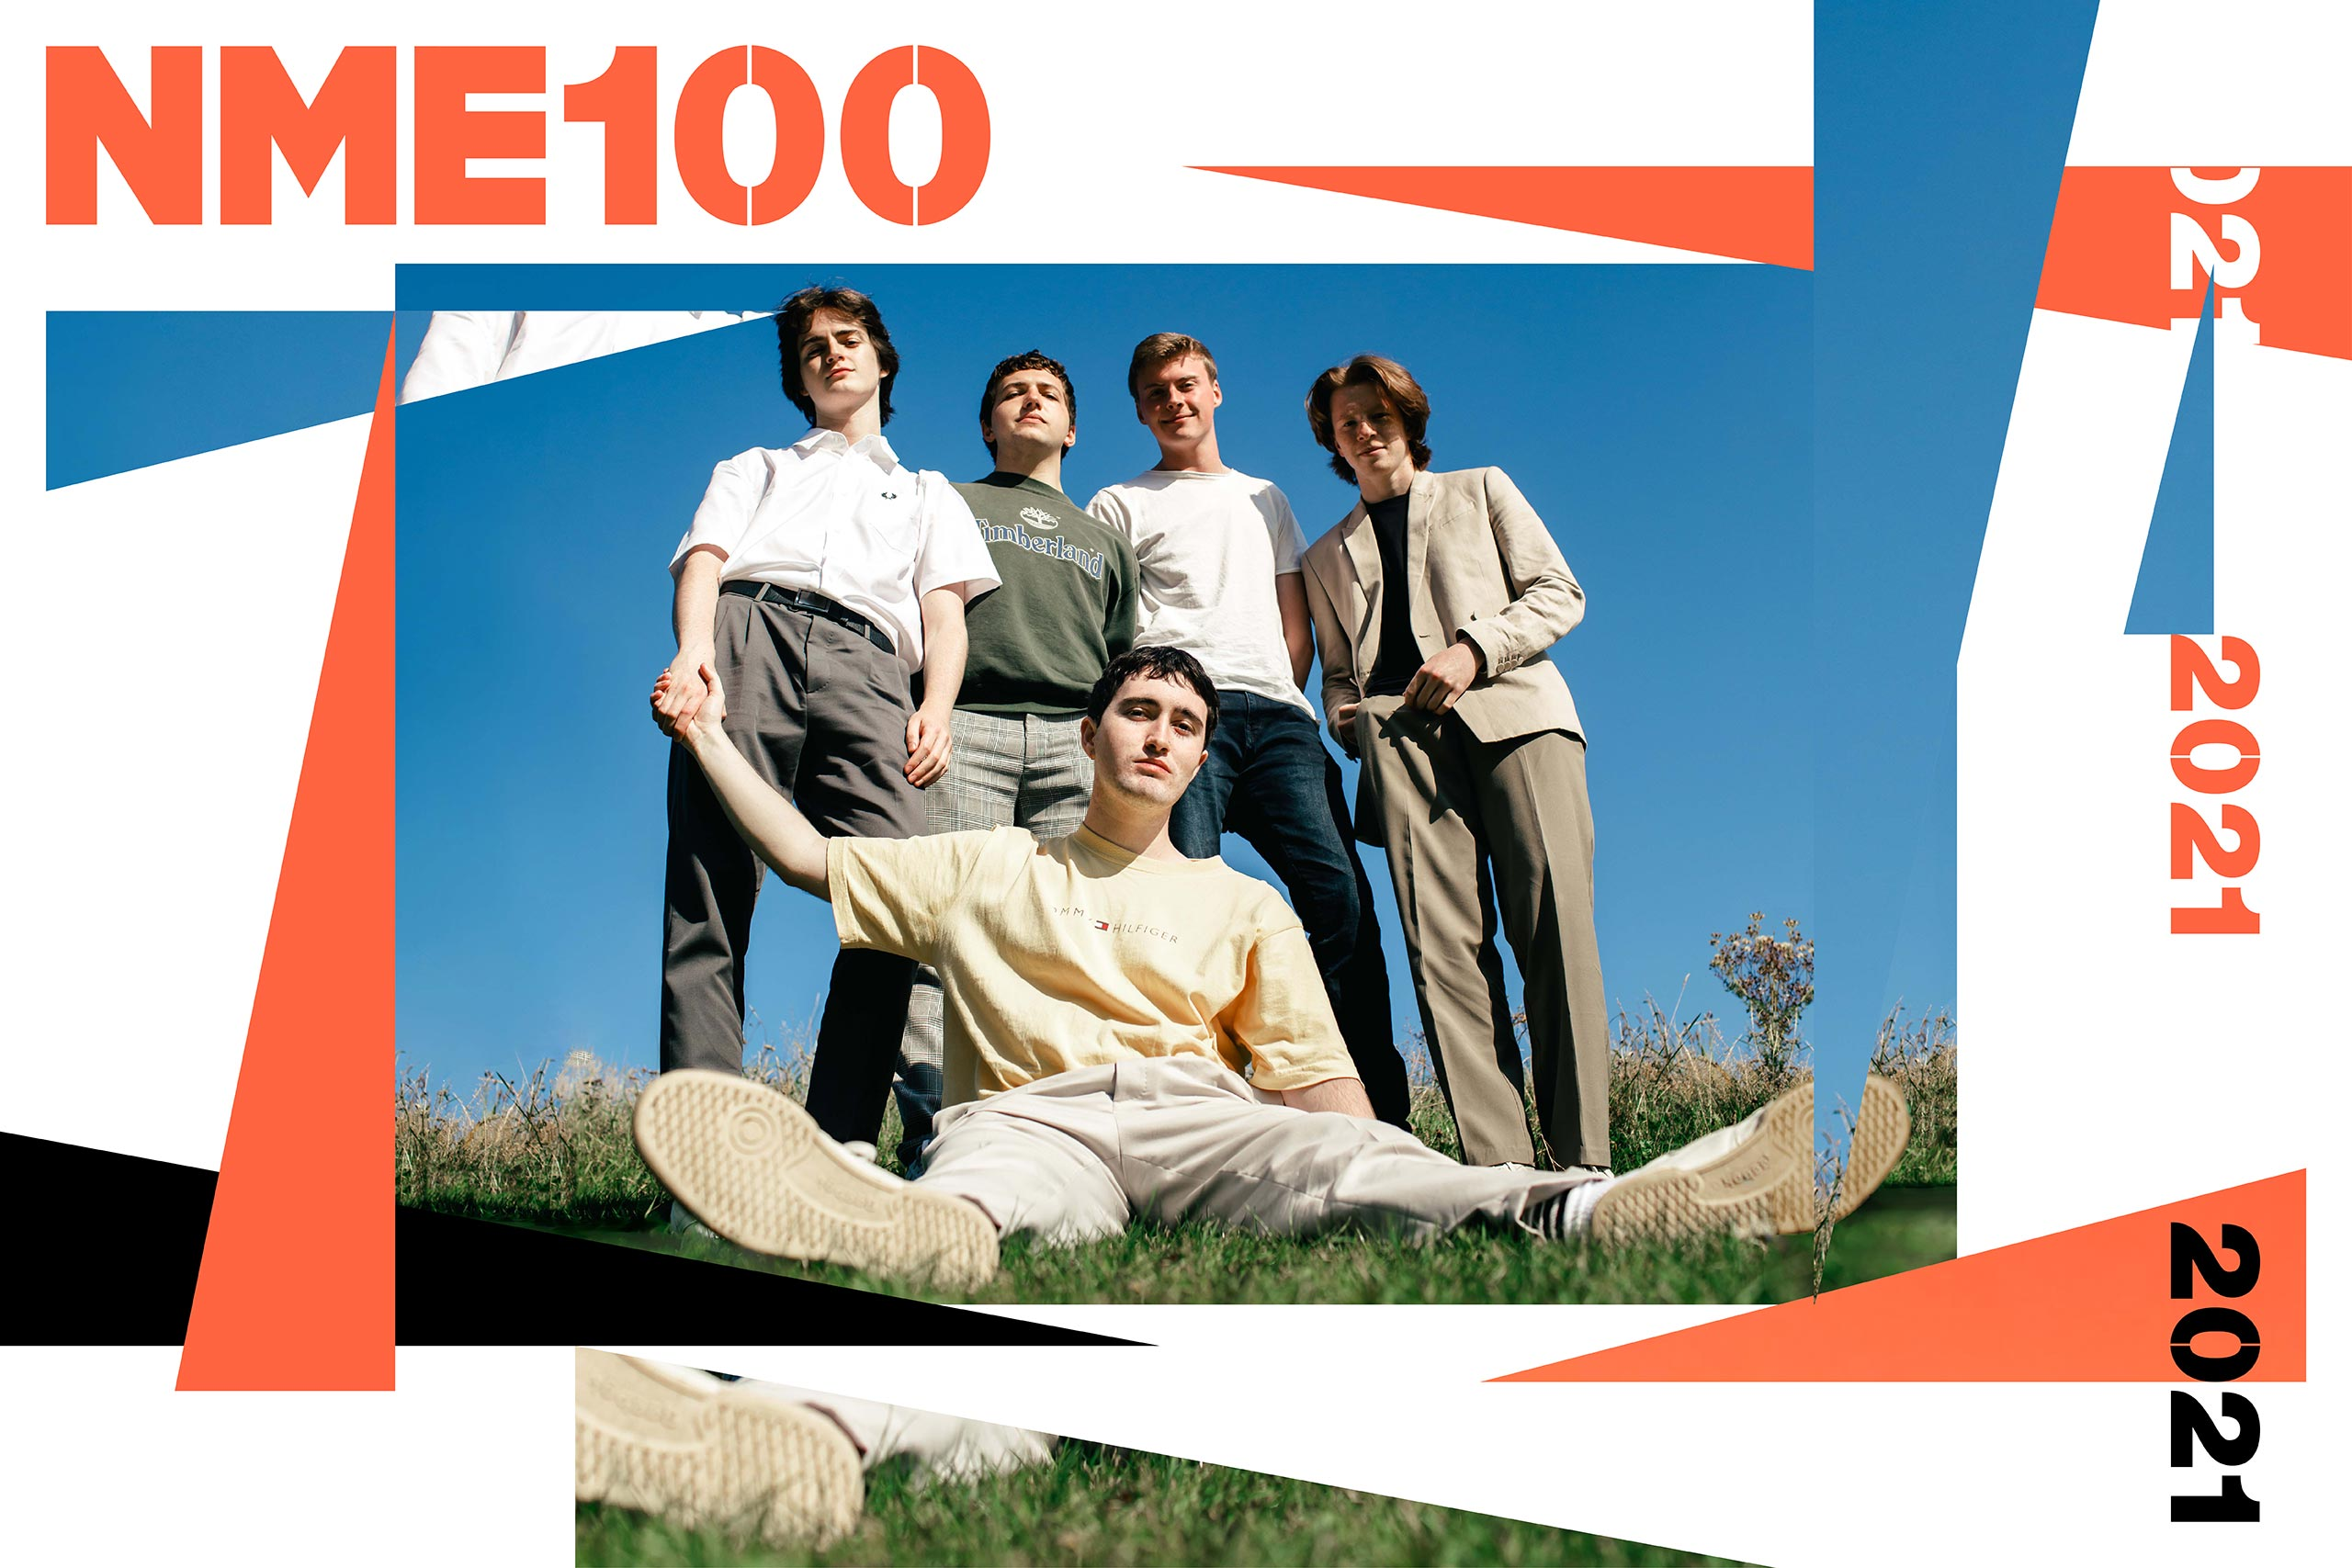 NME 100 courting